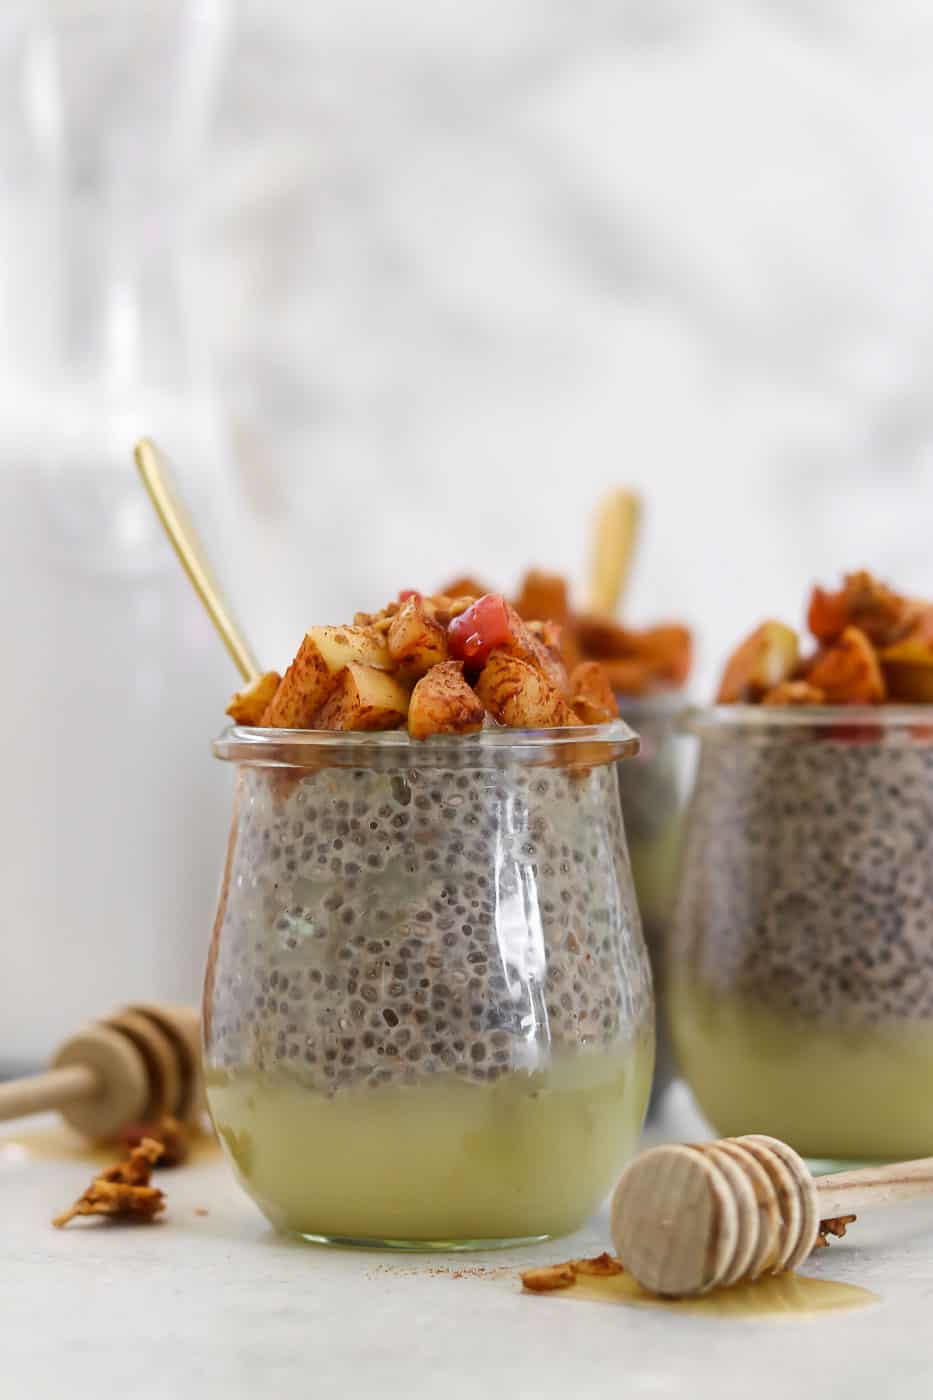 Overnight chia pudding with apples on top and a gold spoon.